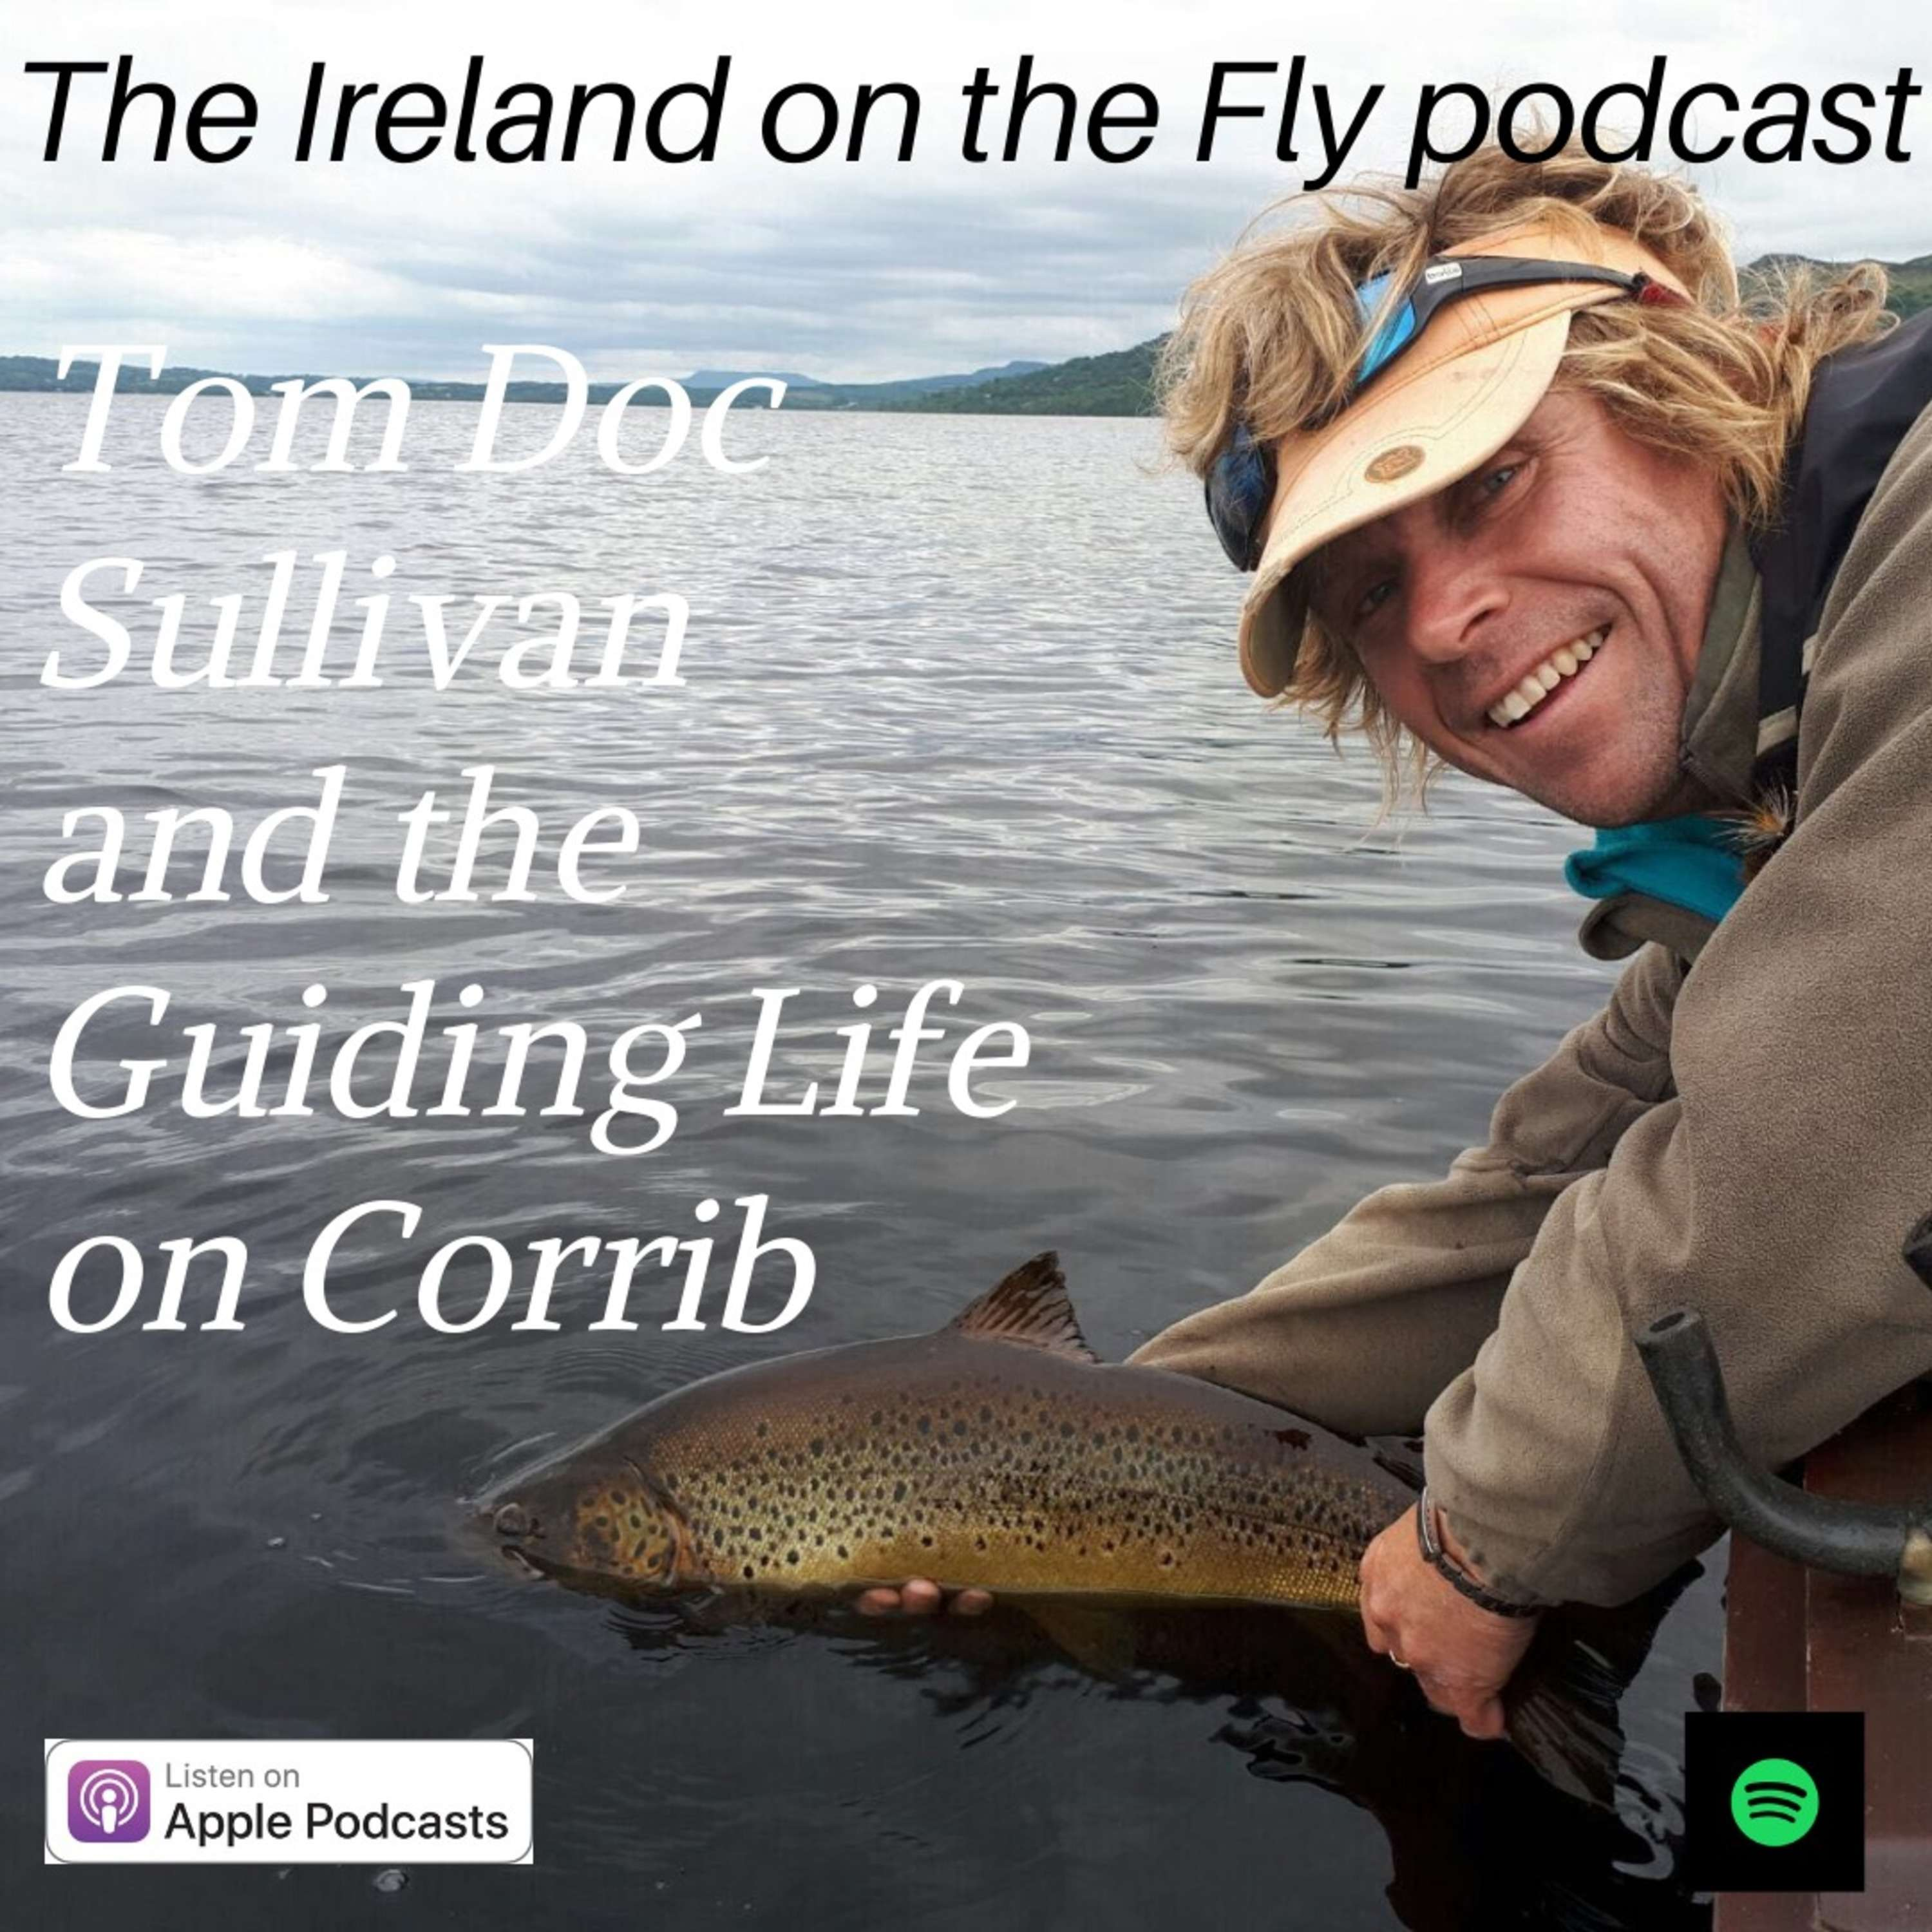 Tom Doc Sullivan and the Guiding Life on Corrib